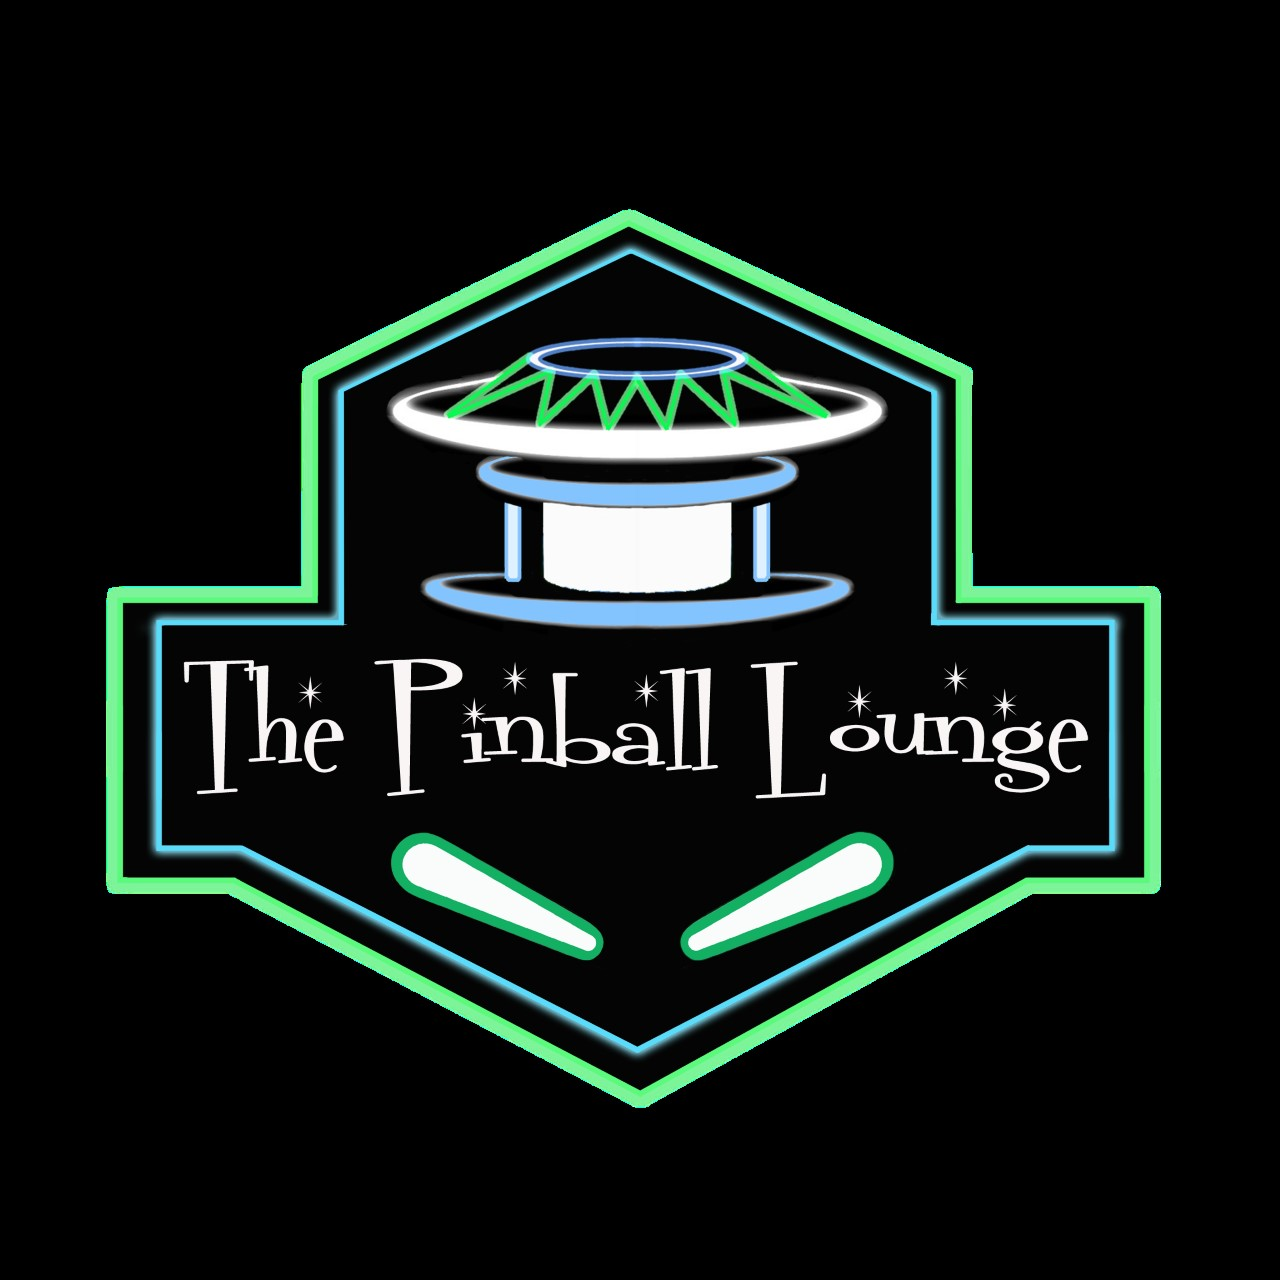 The Pinball Lounge